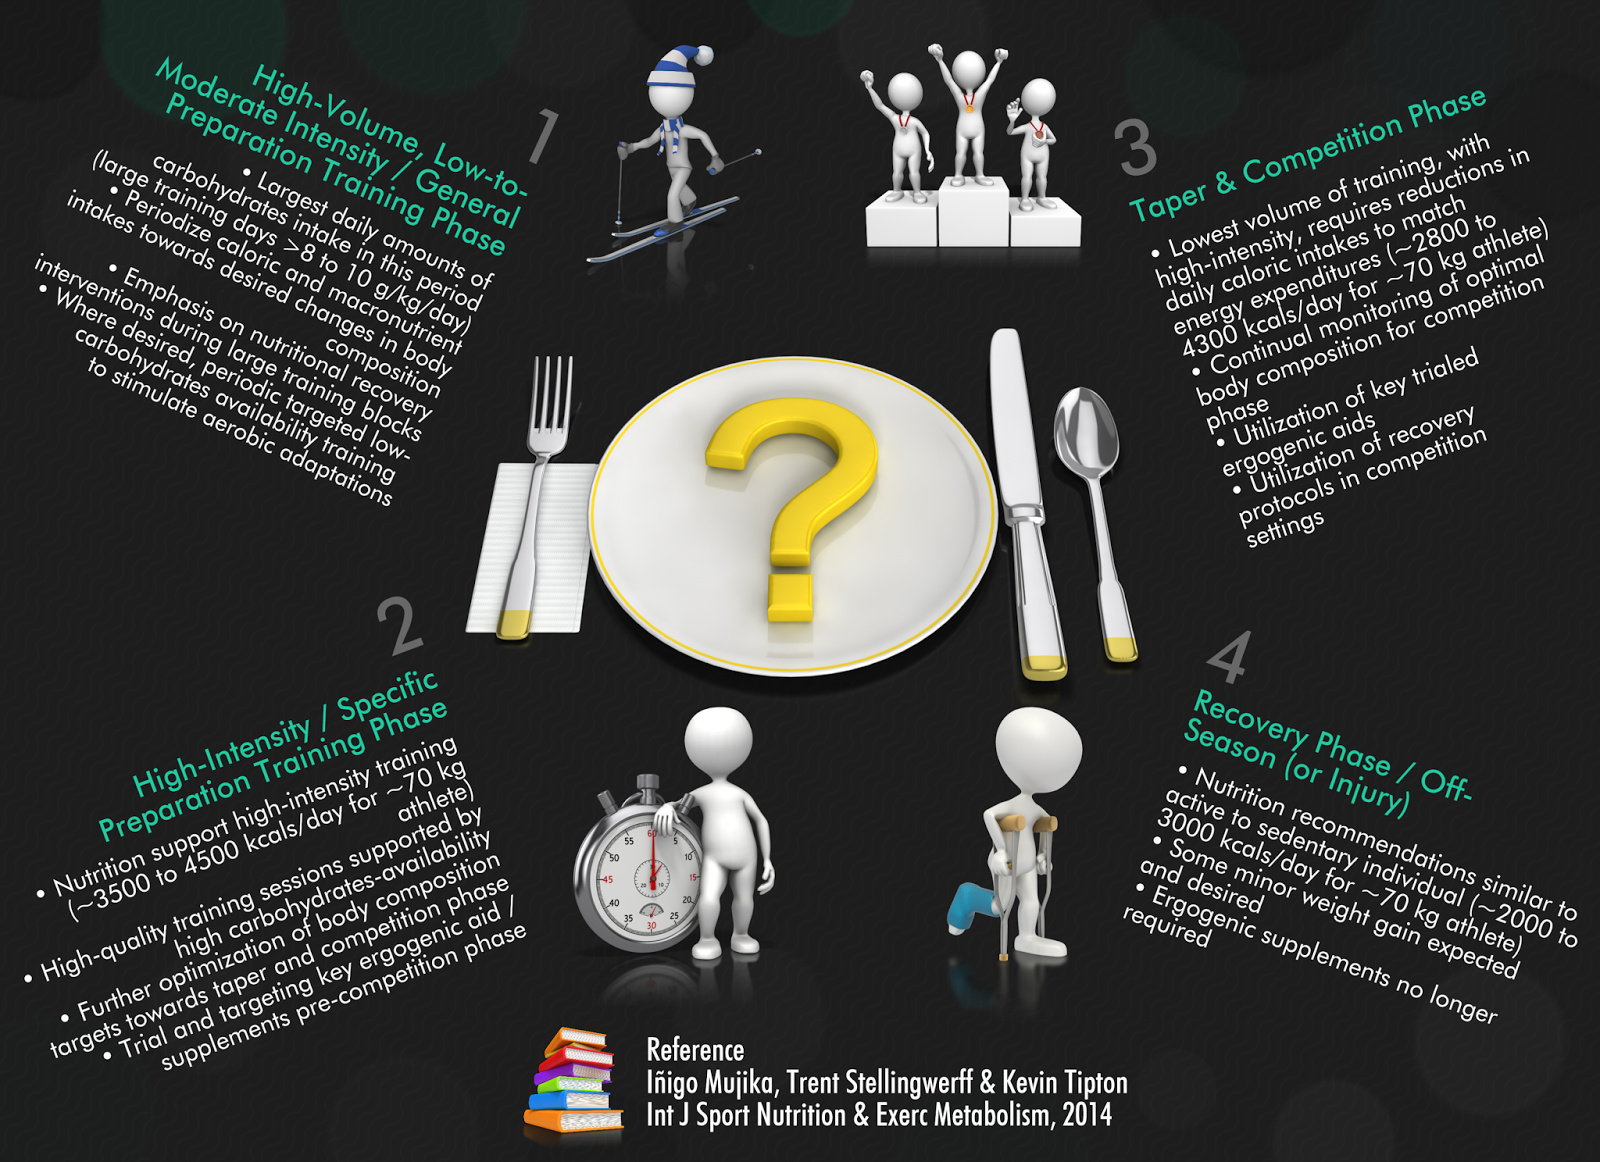 #Nutrition | Look here how to periodize nutrition to facilitate adaptation to training & peak perf